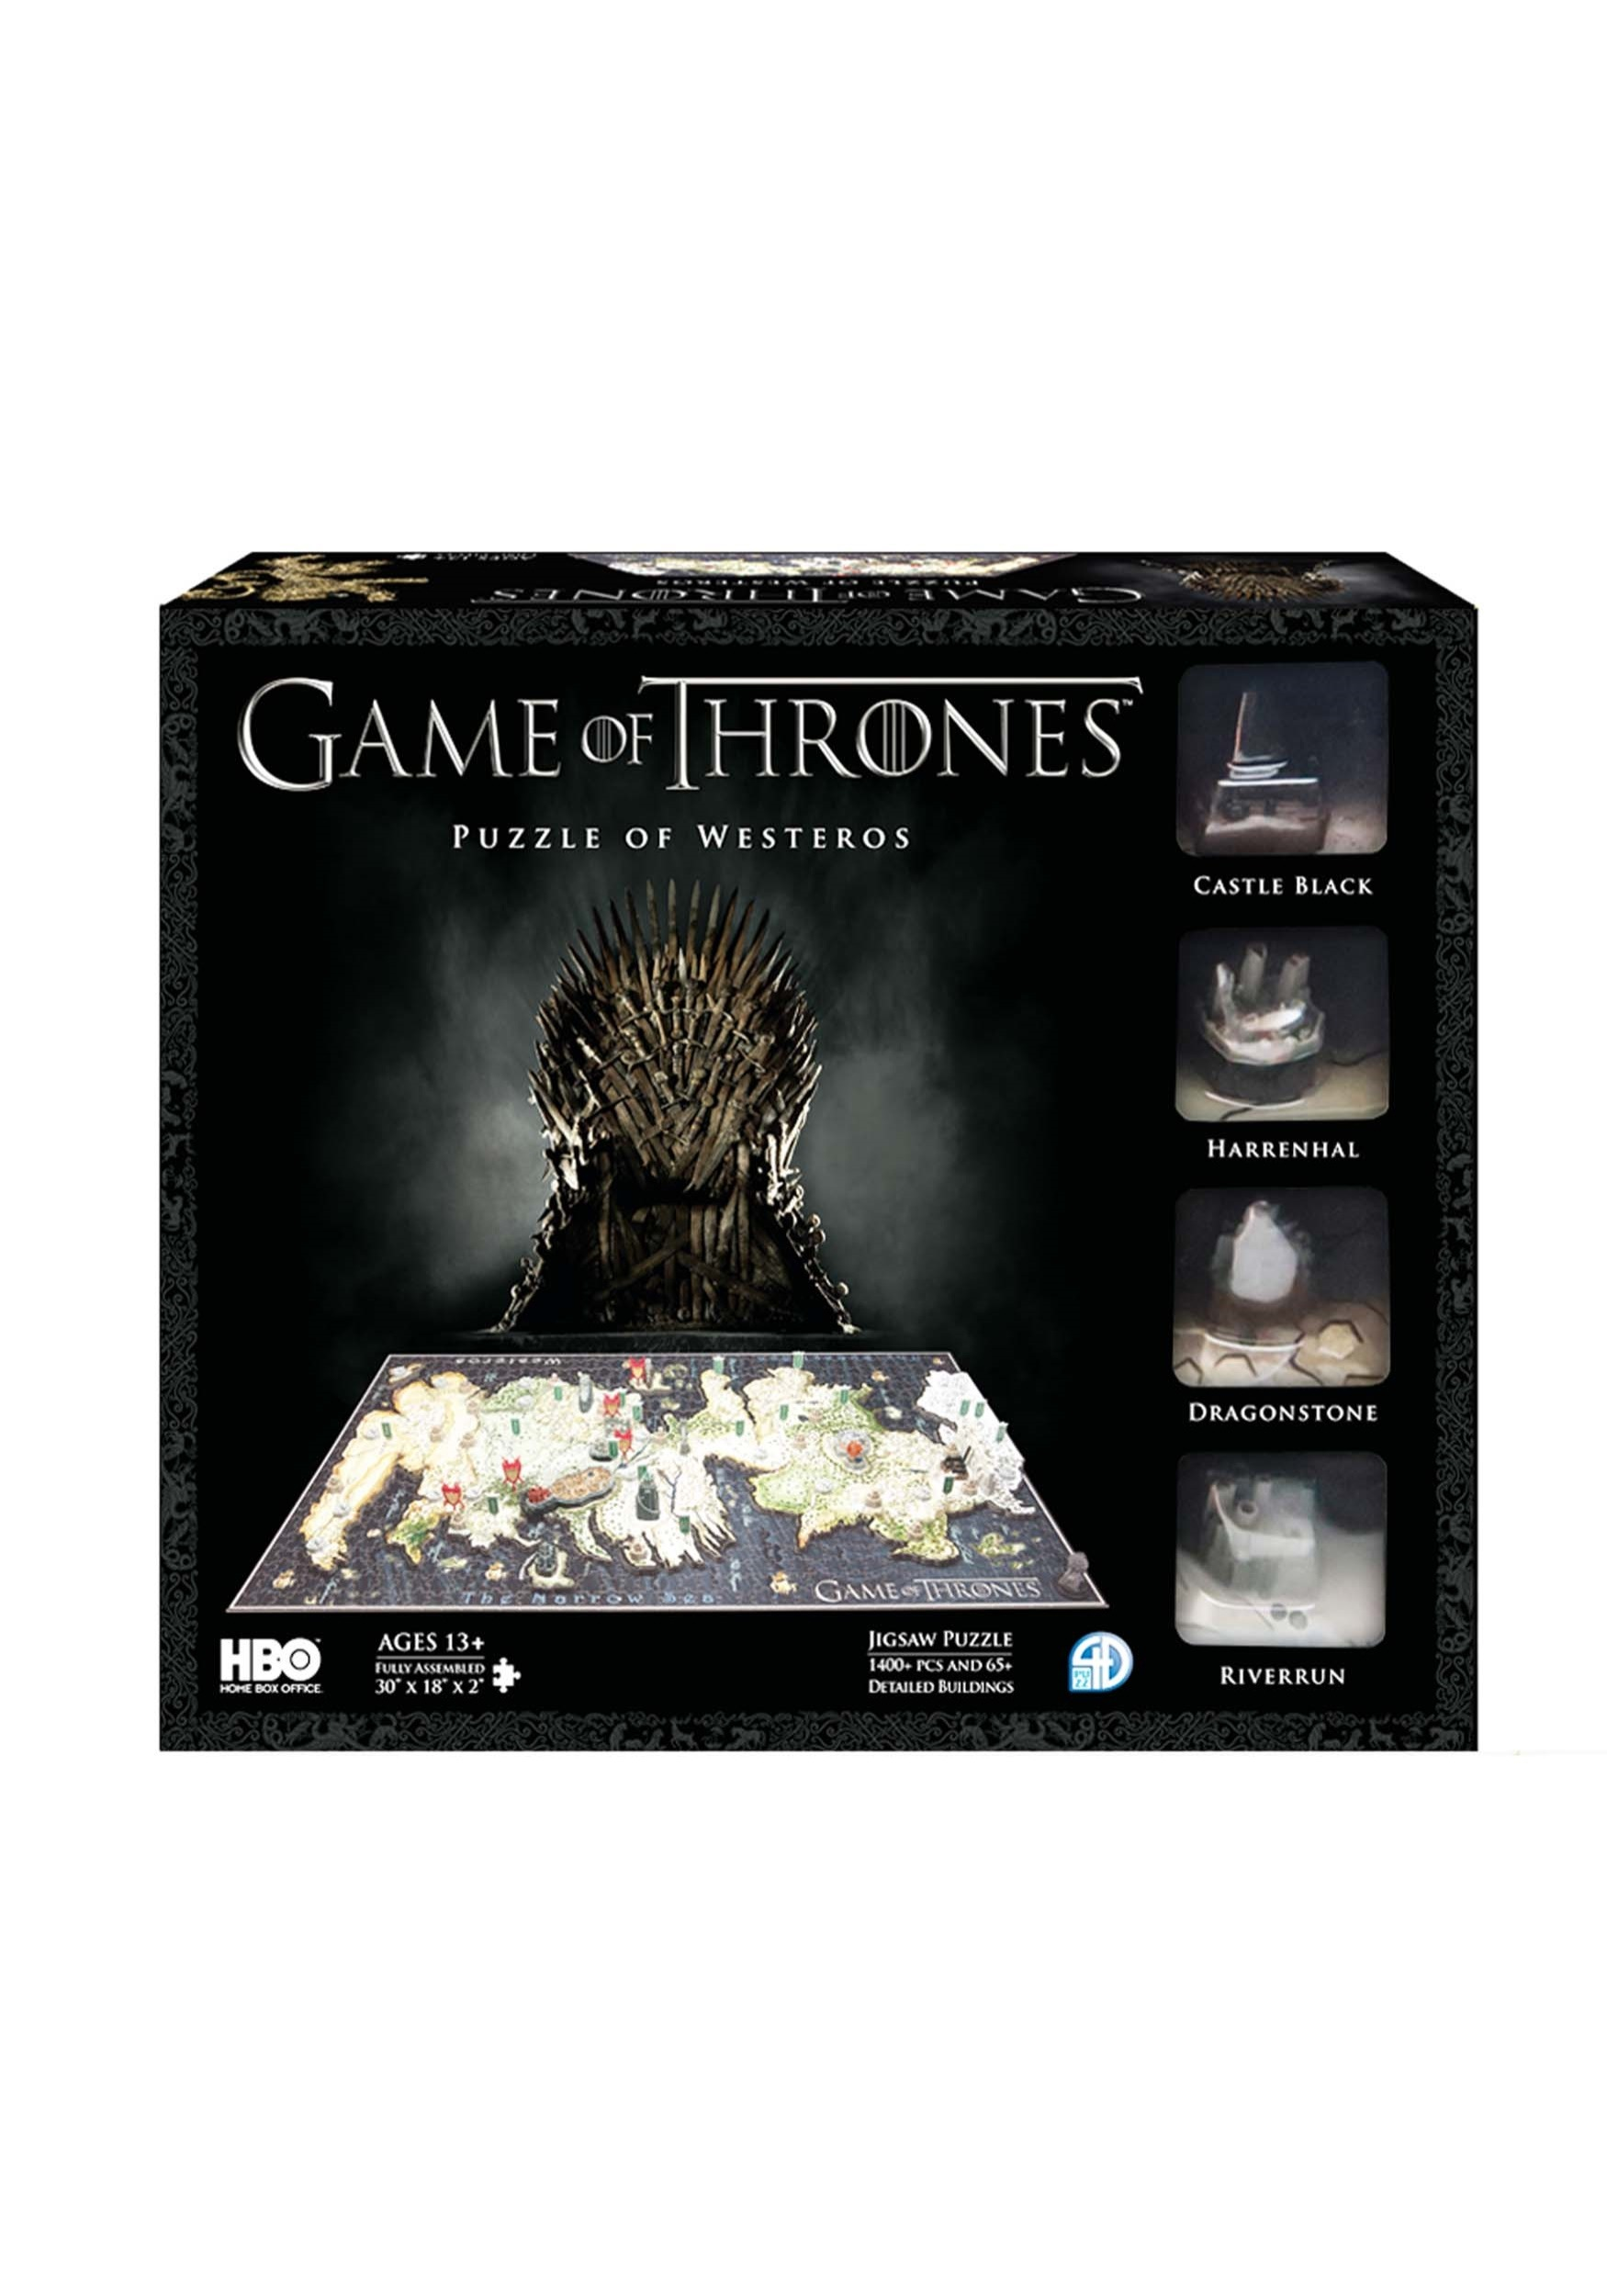 Game of Thrones Westeros 3D Puzzle Game Of Thrones D Map Westeros Puzzle on crown lands map game of thrones, detailed map of westeros game of thrones, google map game of thrones,